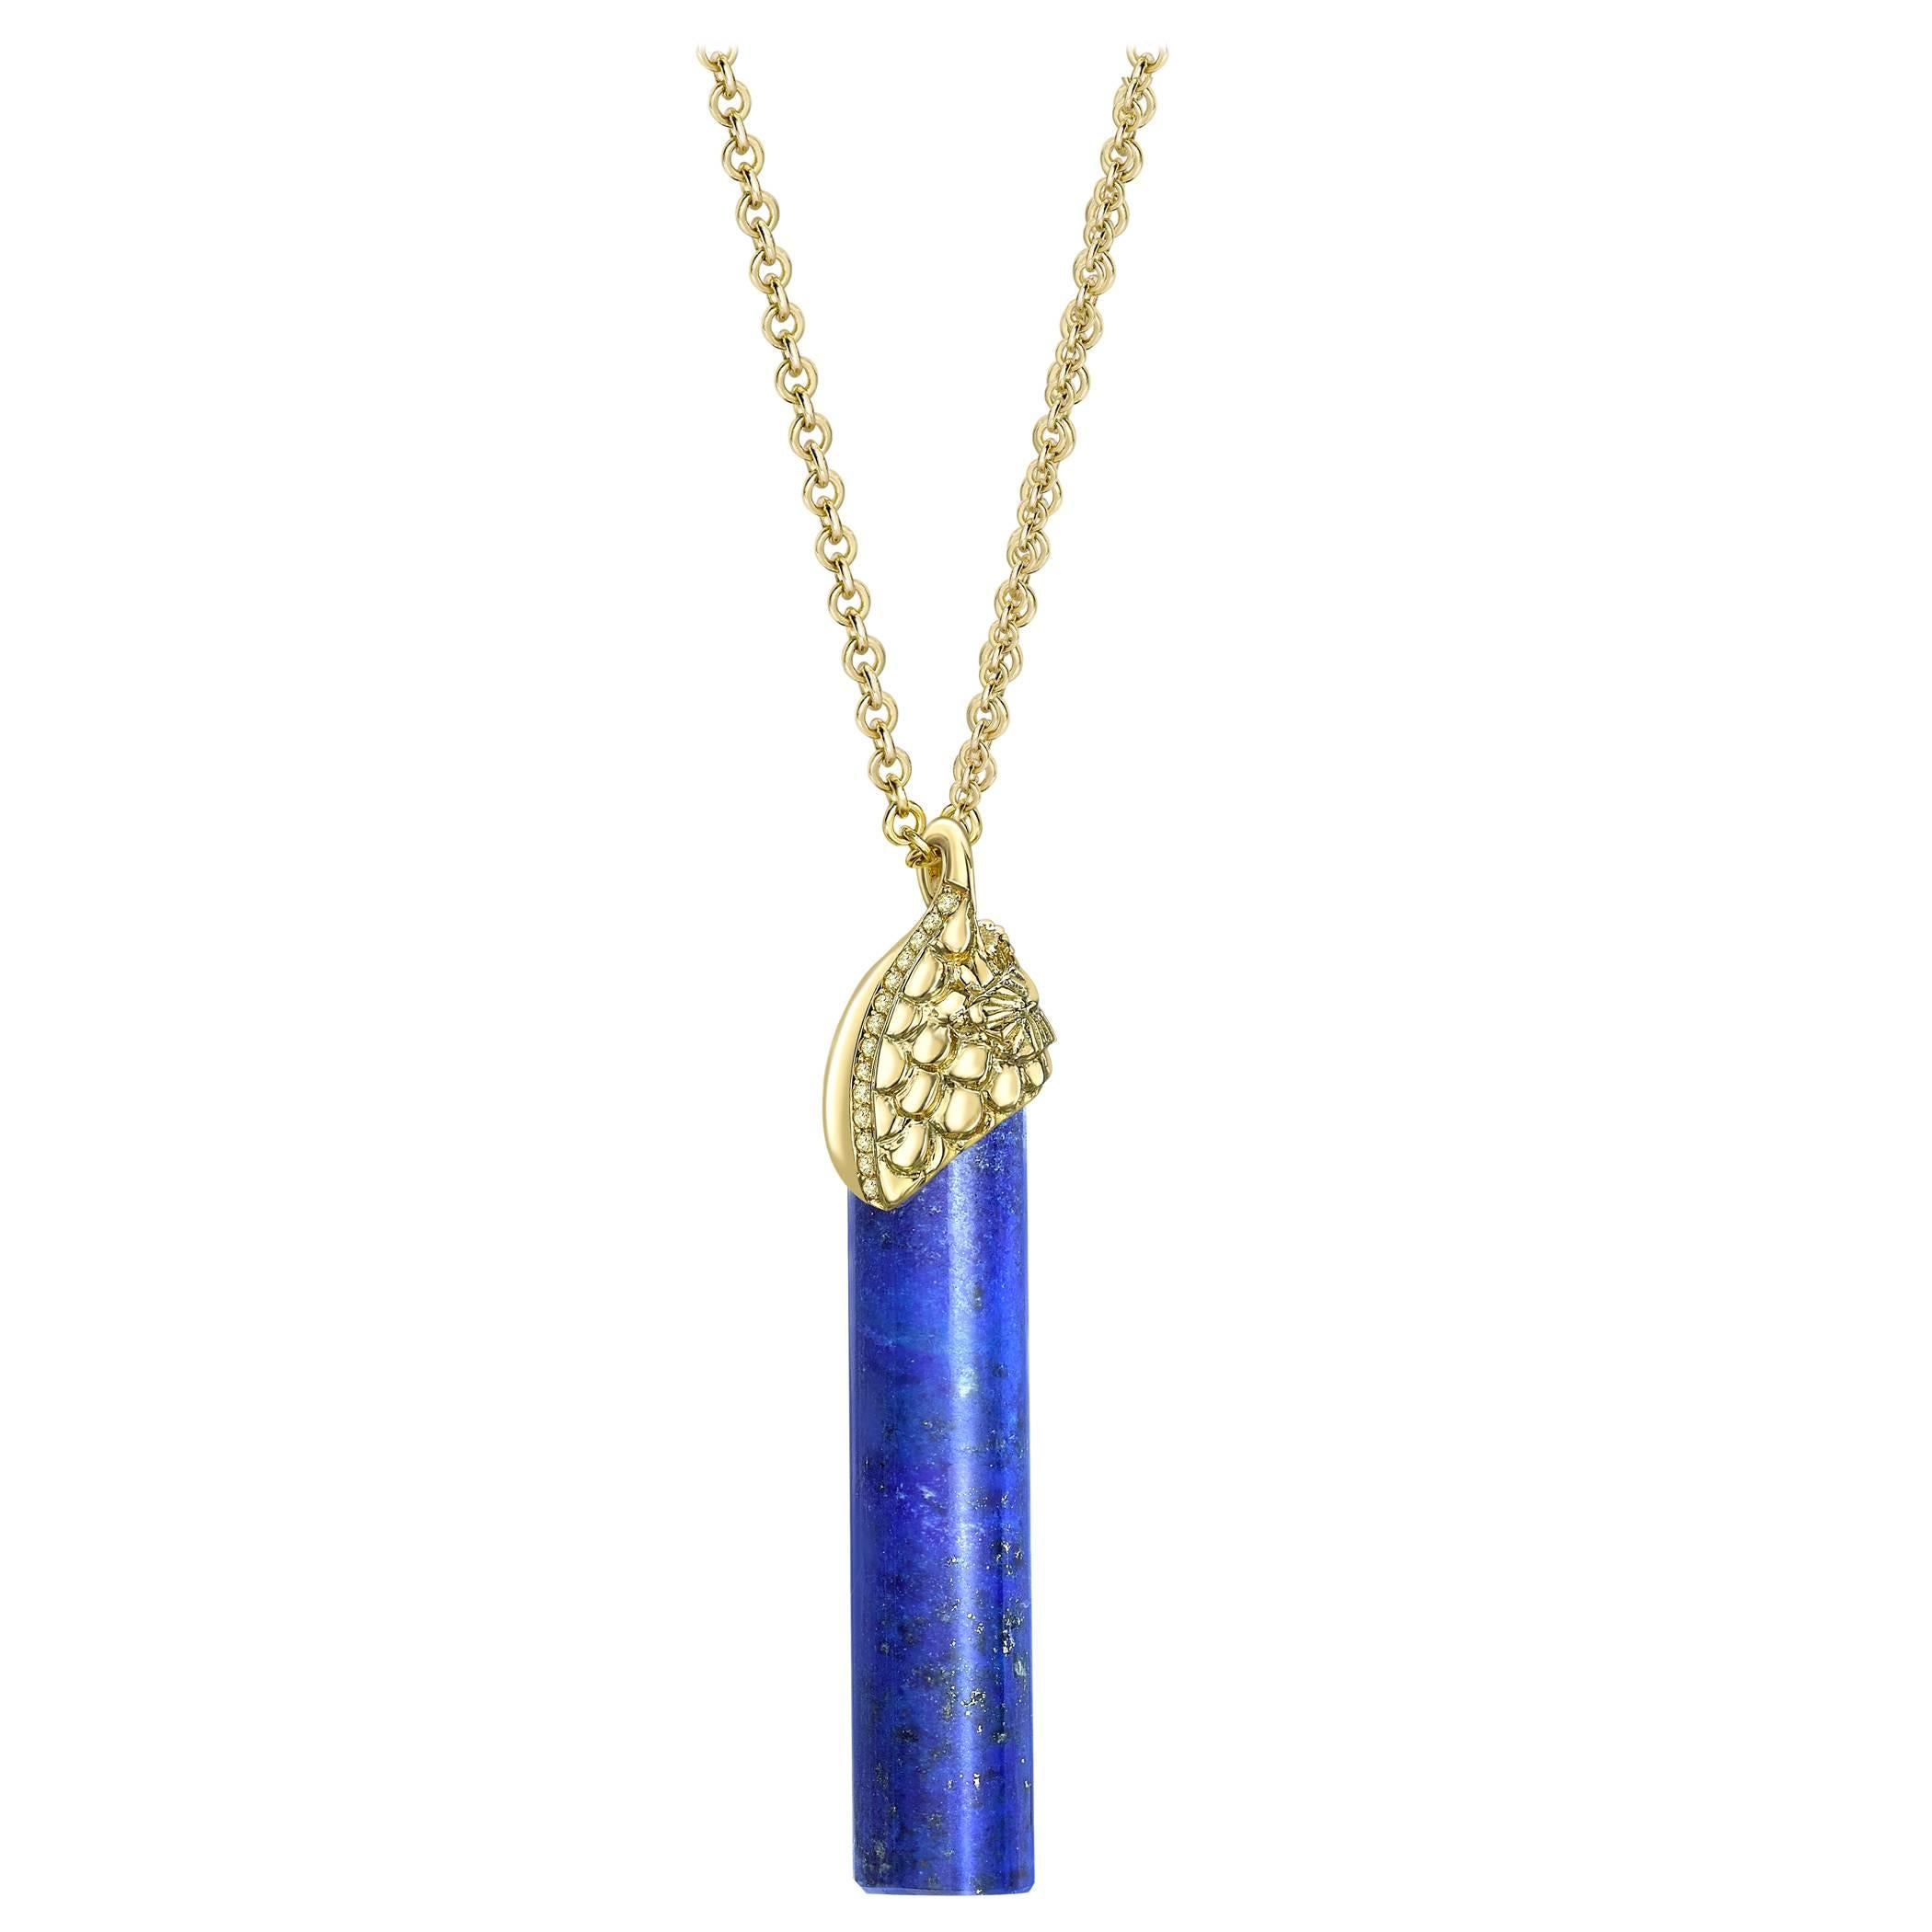 pendant lapis and bead traditional asian goods necklace abacus whole amazinggracehk gemstones com chinese